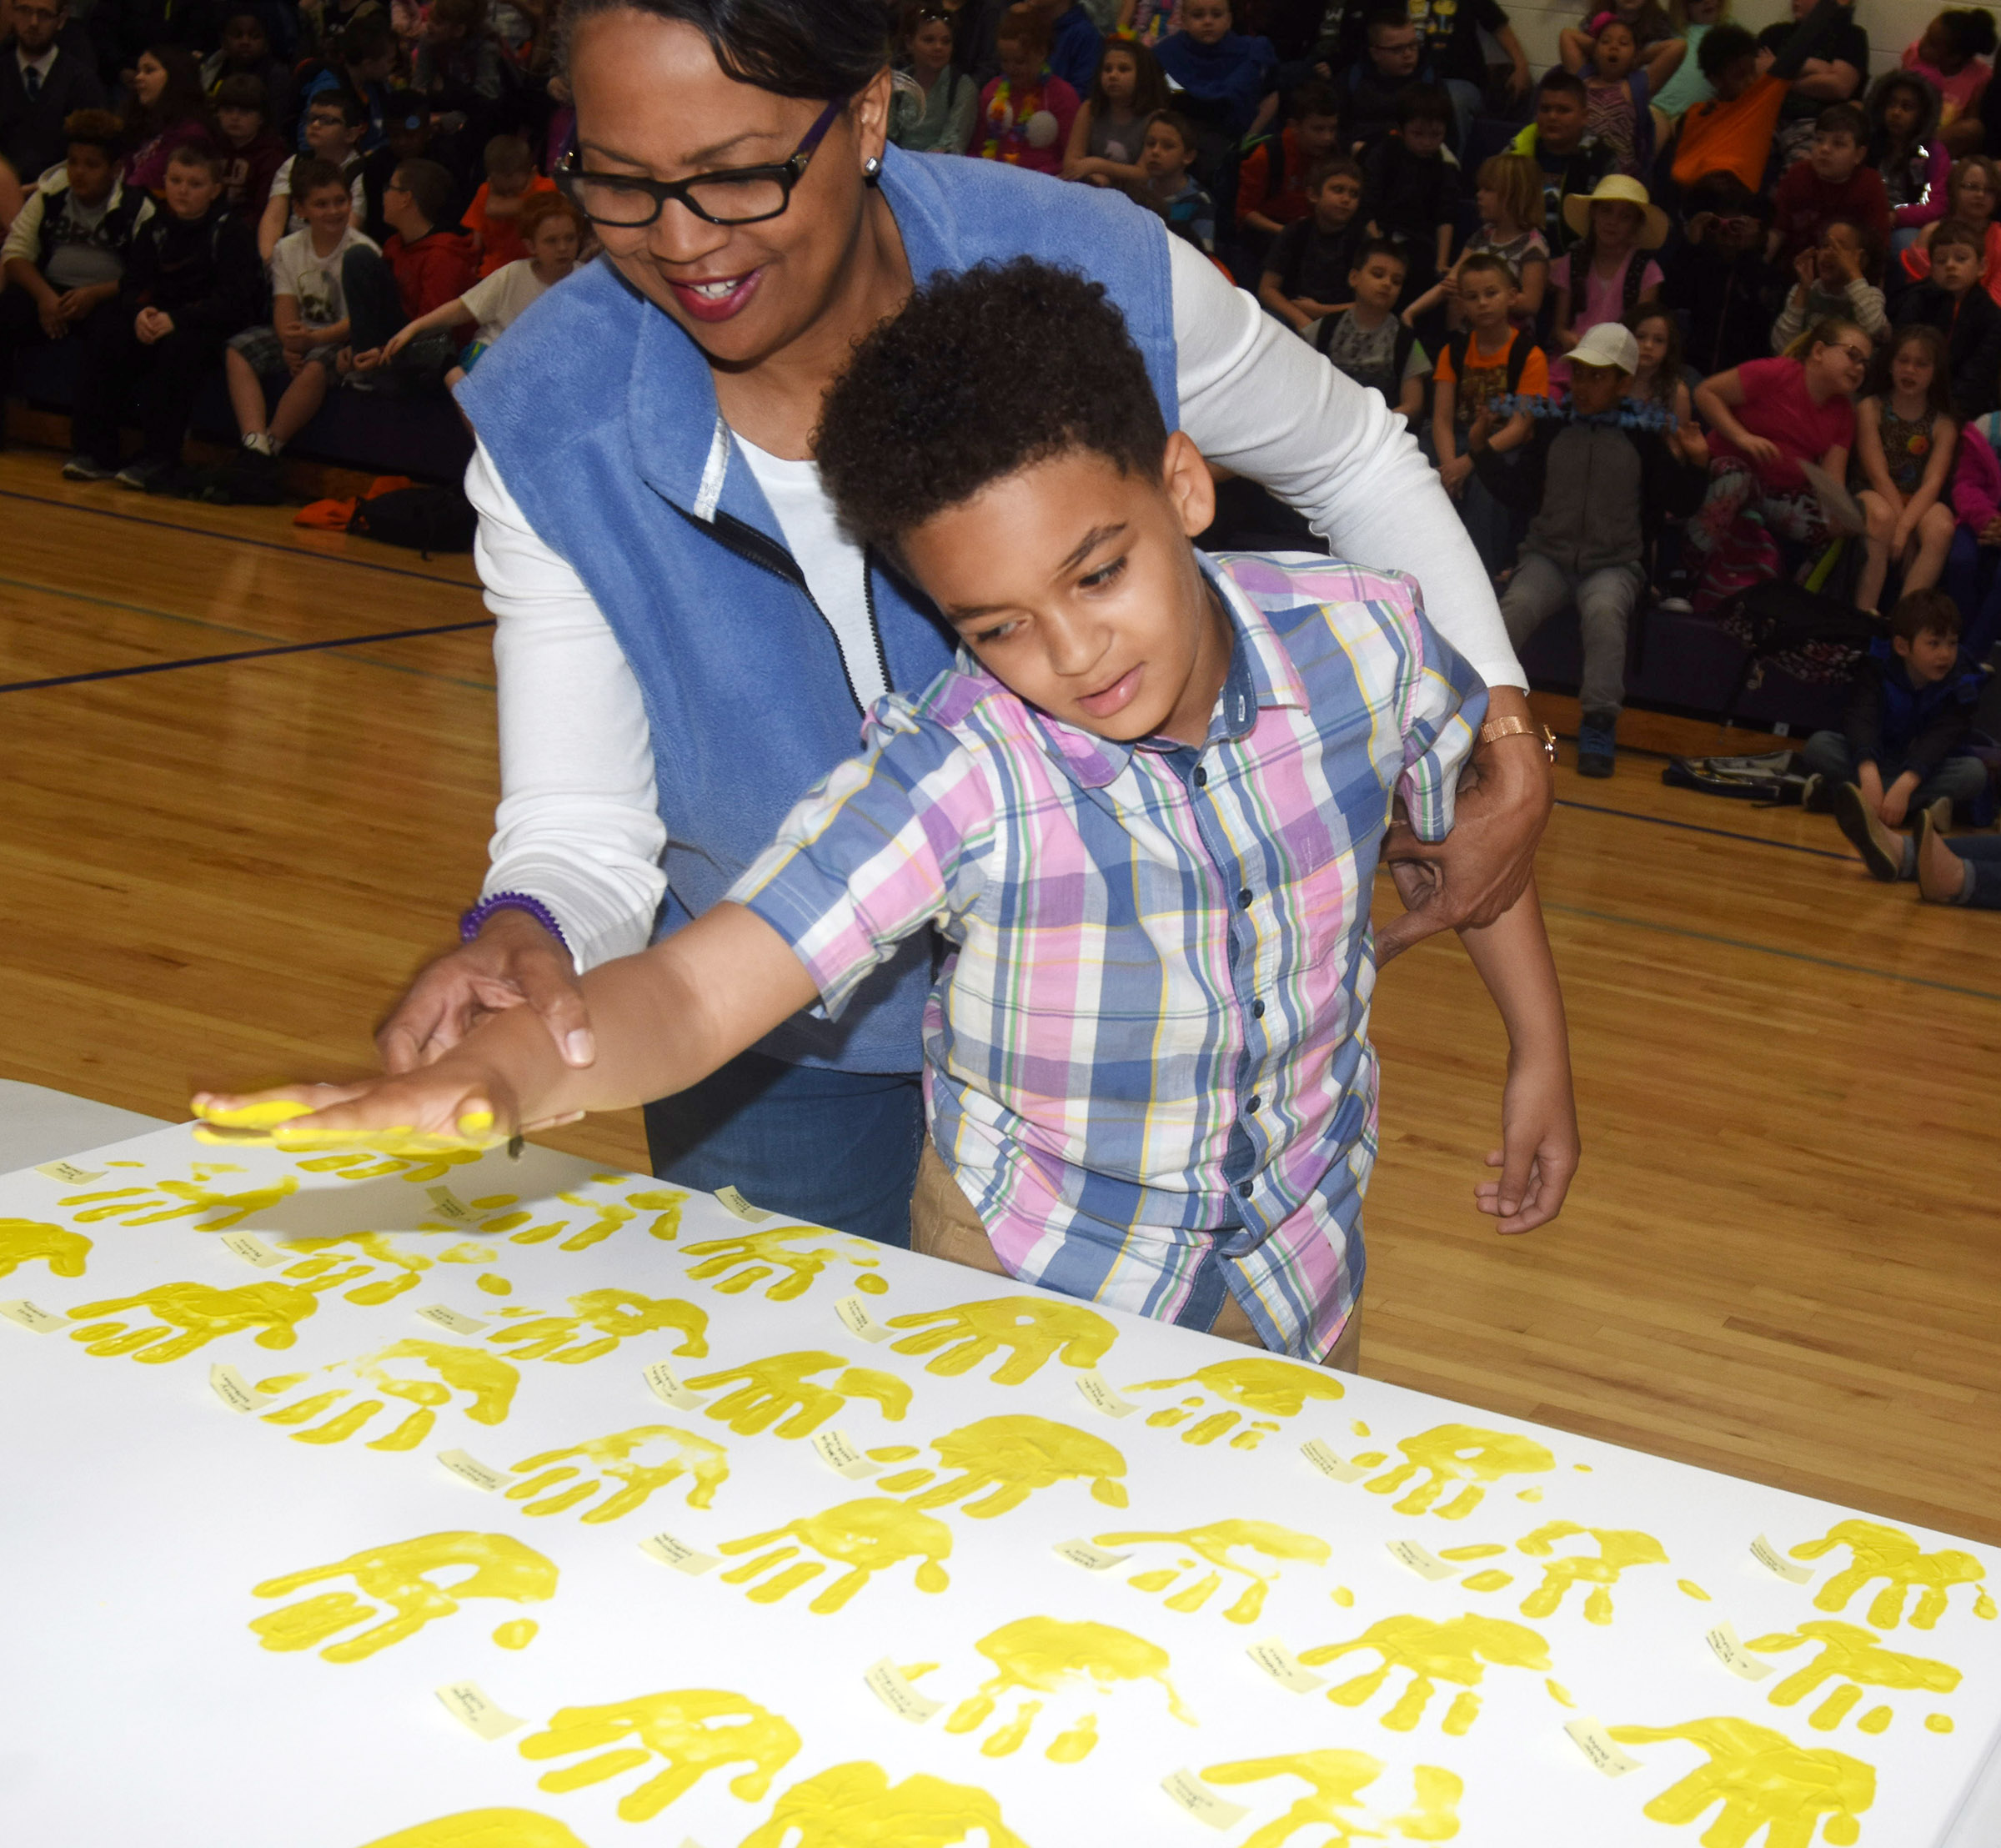 CES fourth-grader Jaden Barbee places his handprint on the canvas, with help from Assistant Principal Doretha Sanders.